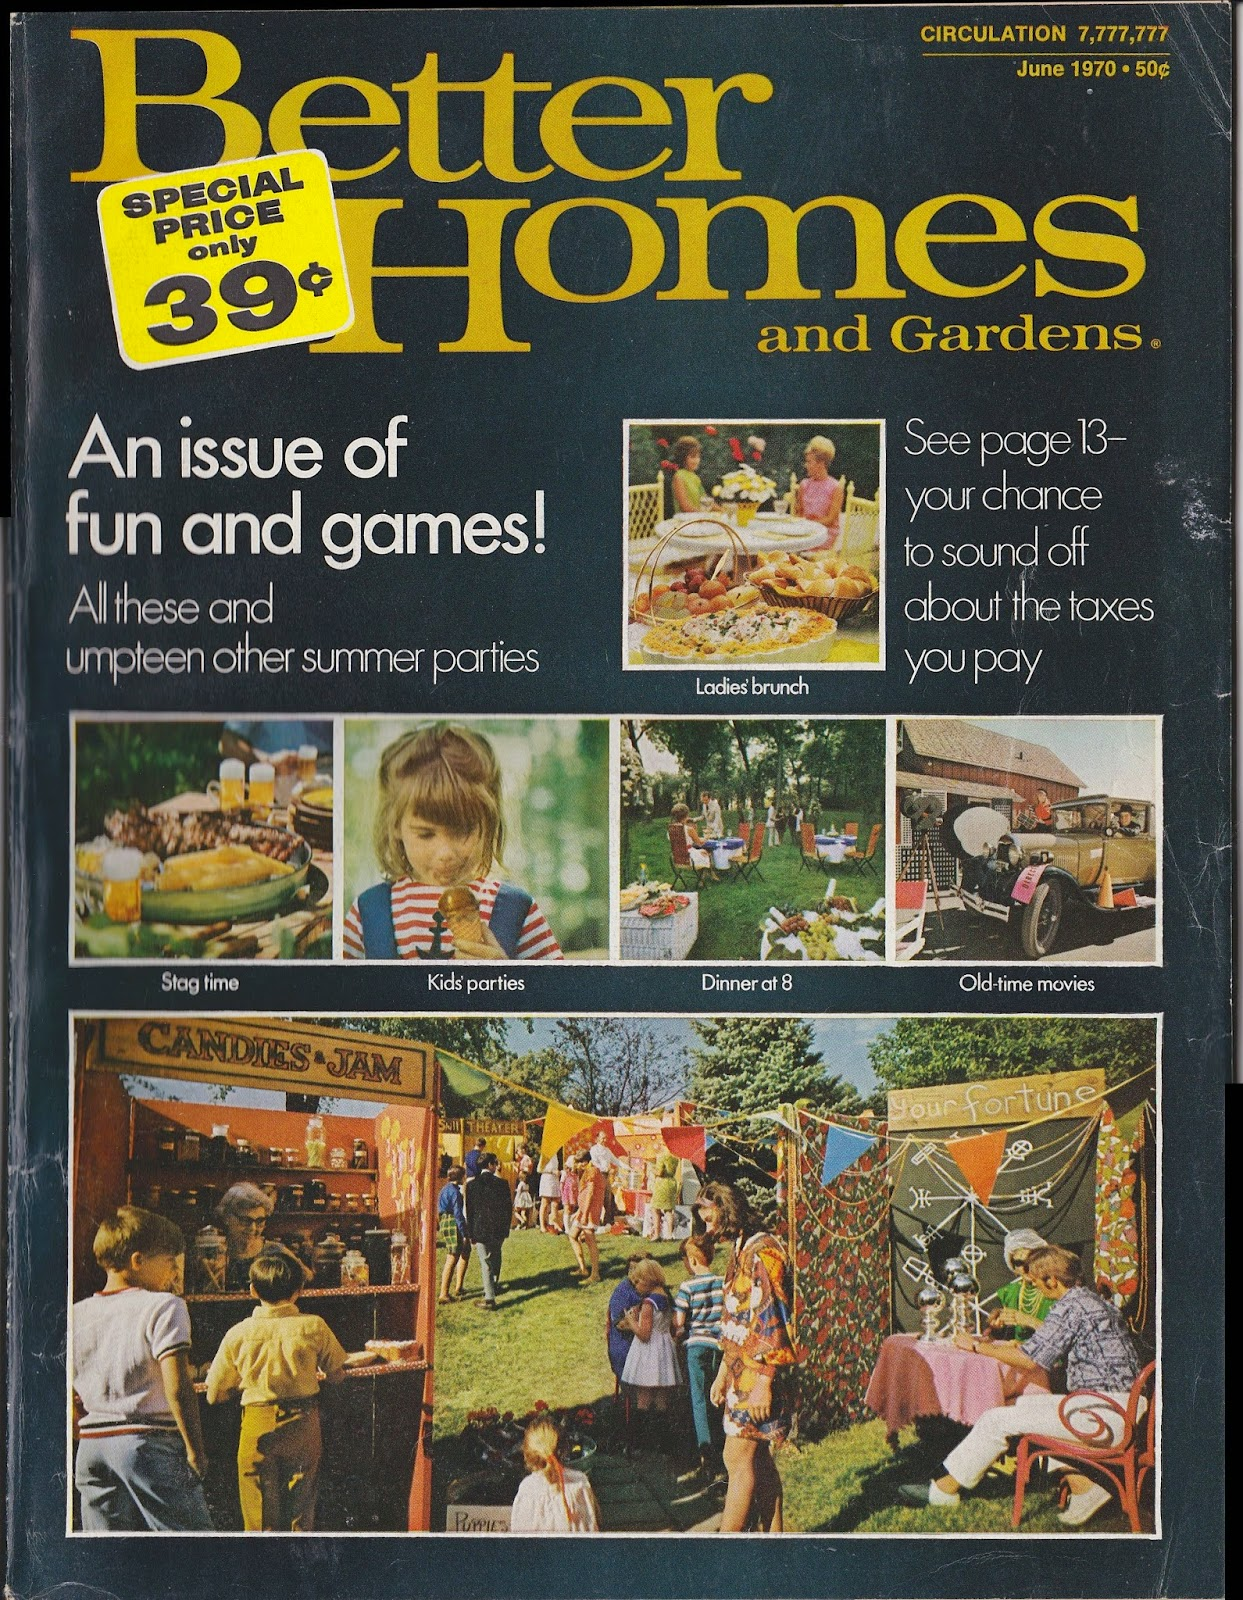 Fortunately For You Better Homes And Gardens Has The How To Hosting Your Own Backyard Freakshow